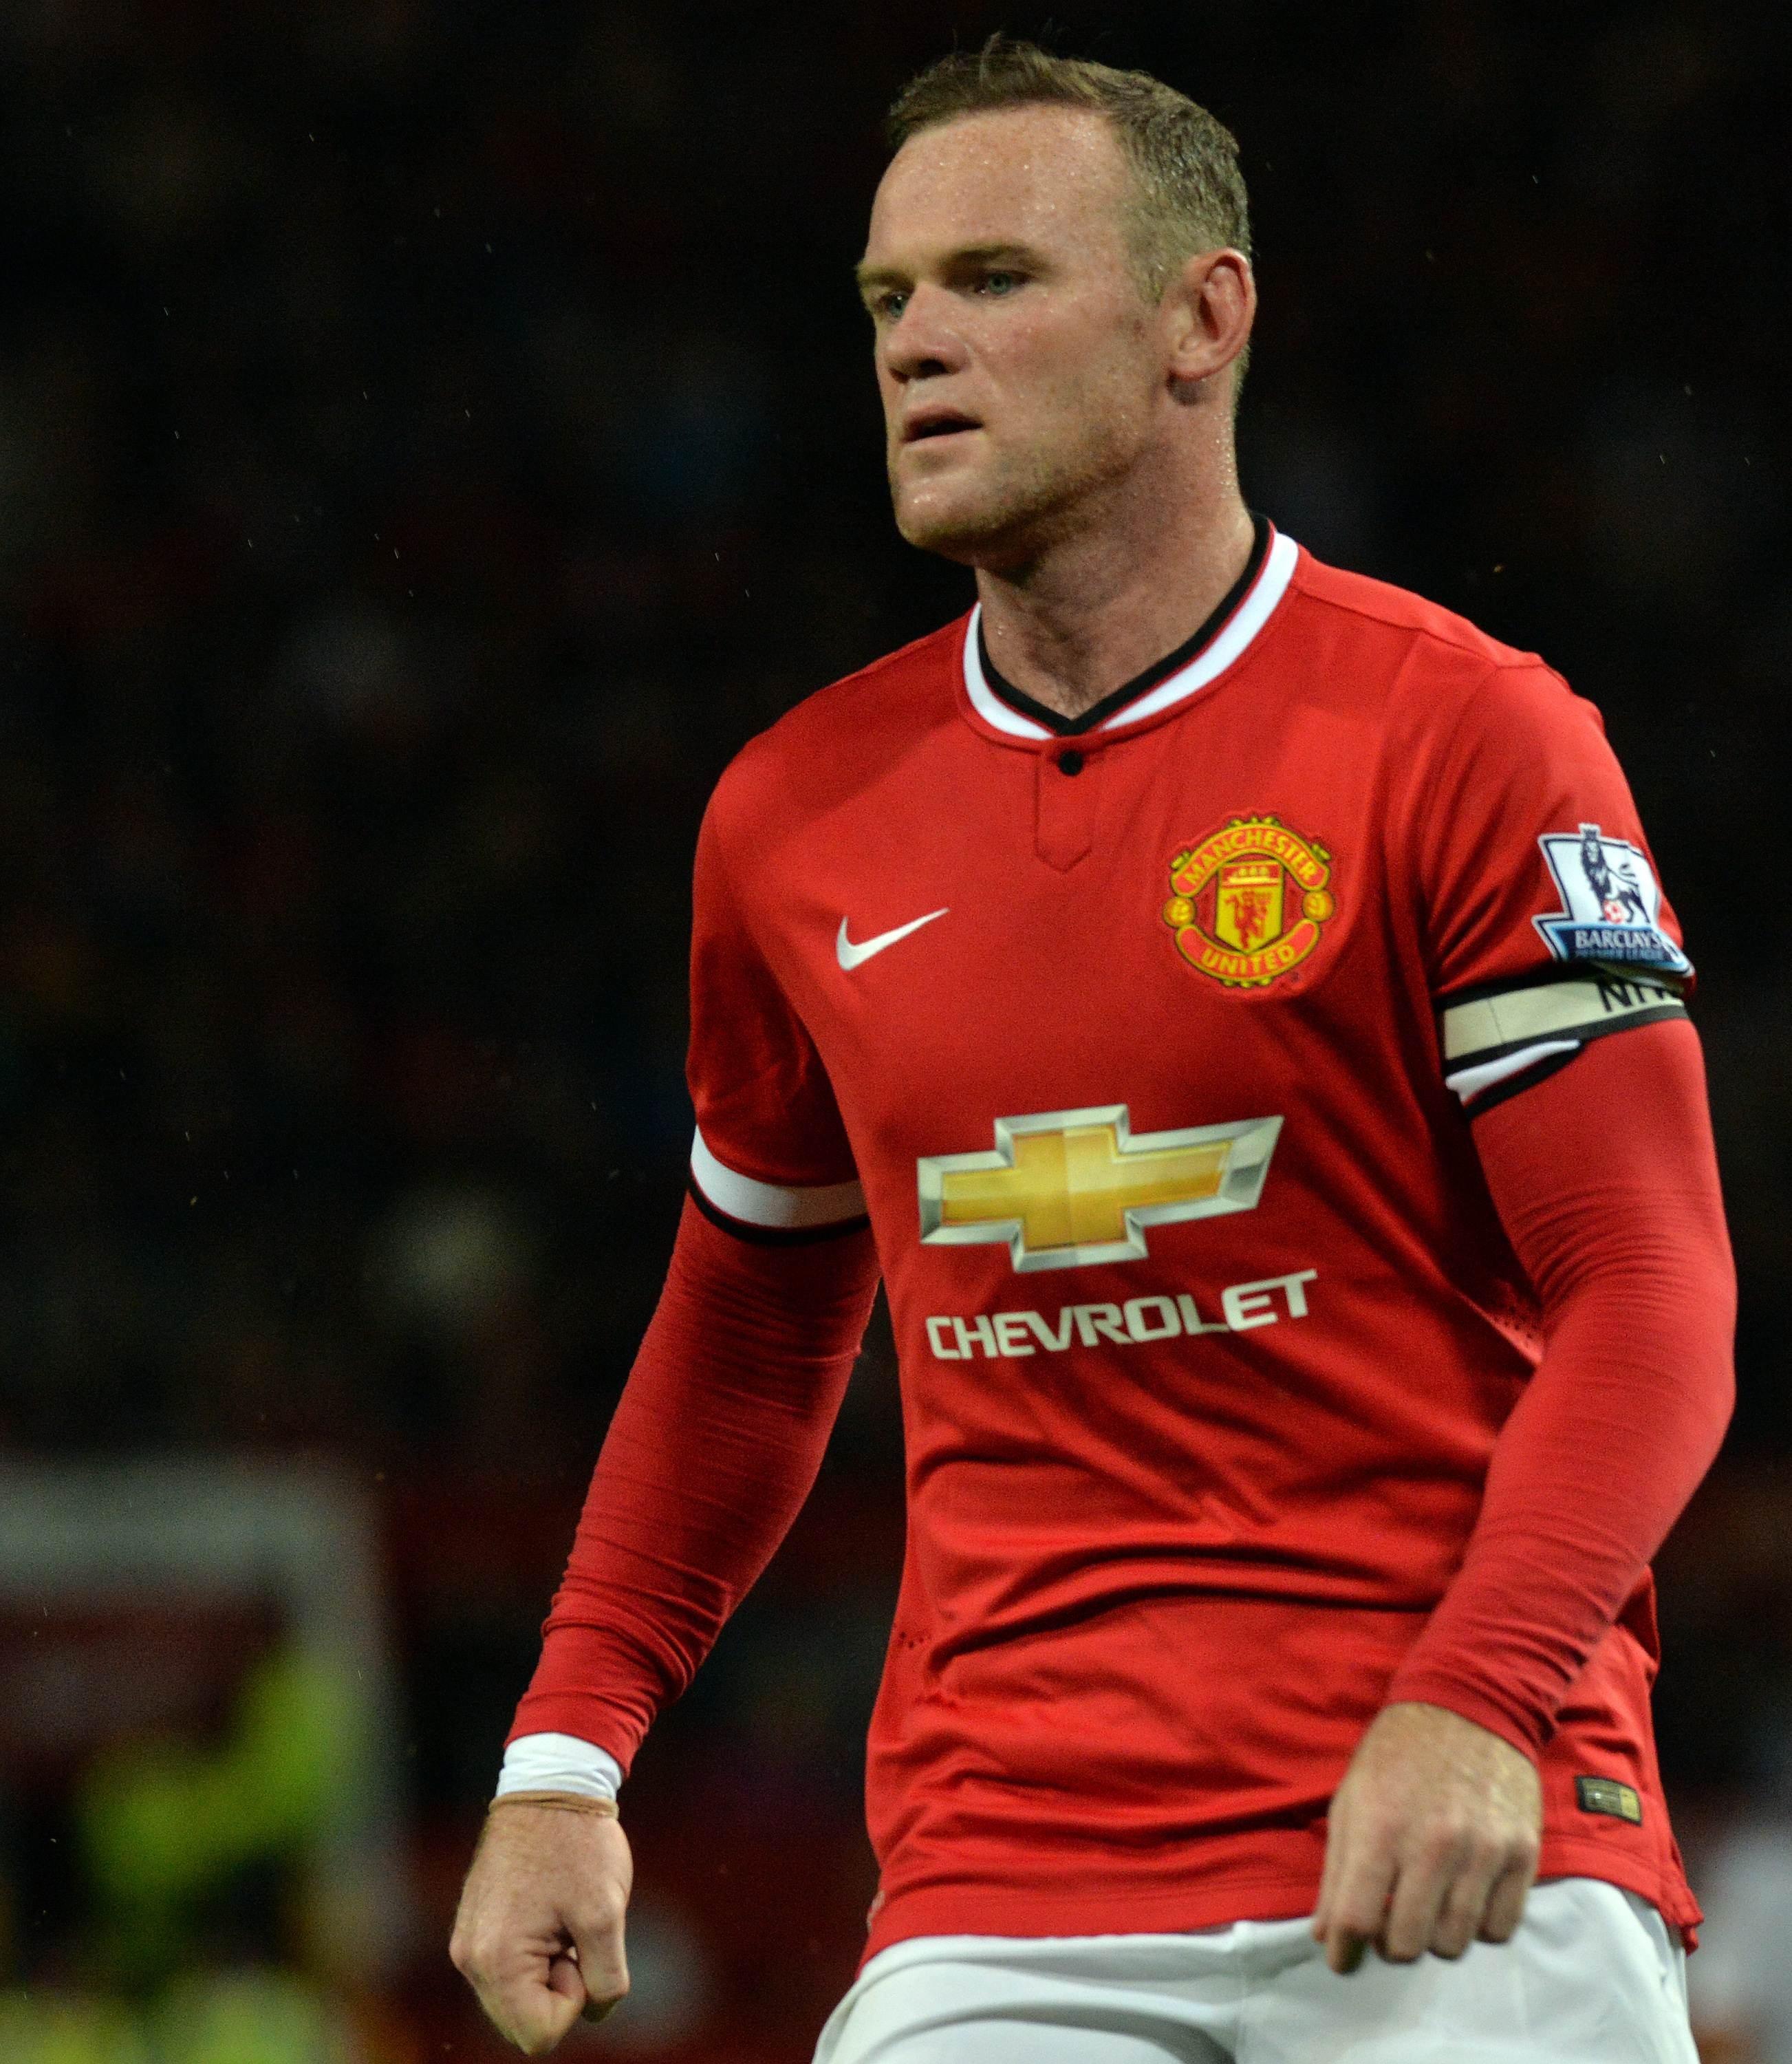 Wayne Rooney Captain Wayne Rooney will captain Manchester United this season South China